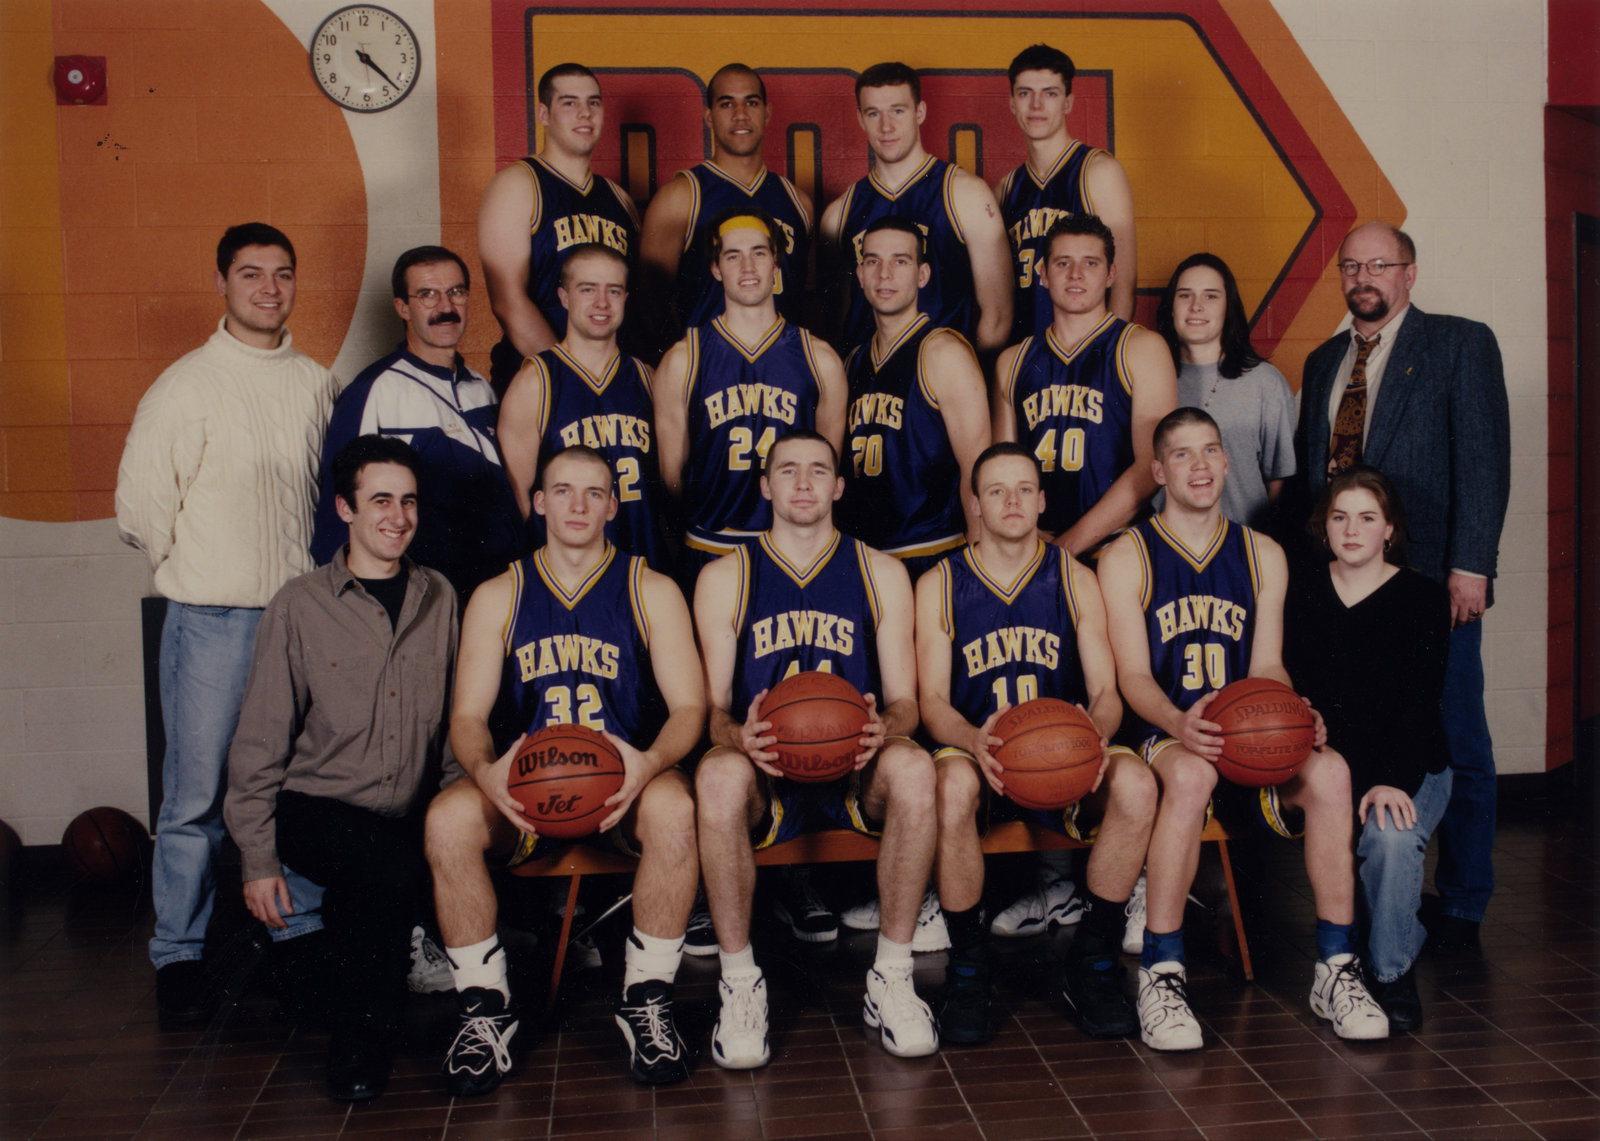 Wilfrid Laurier University men's basketball team, 1996-1997